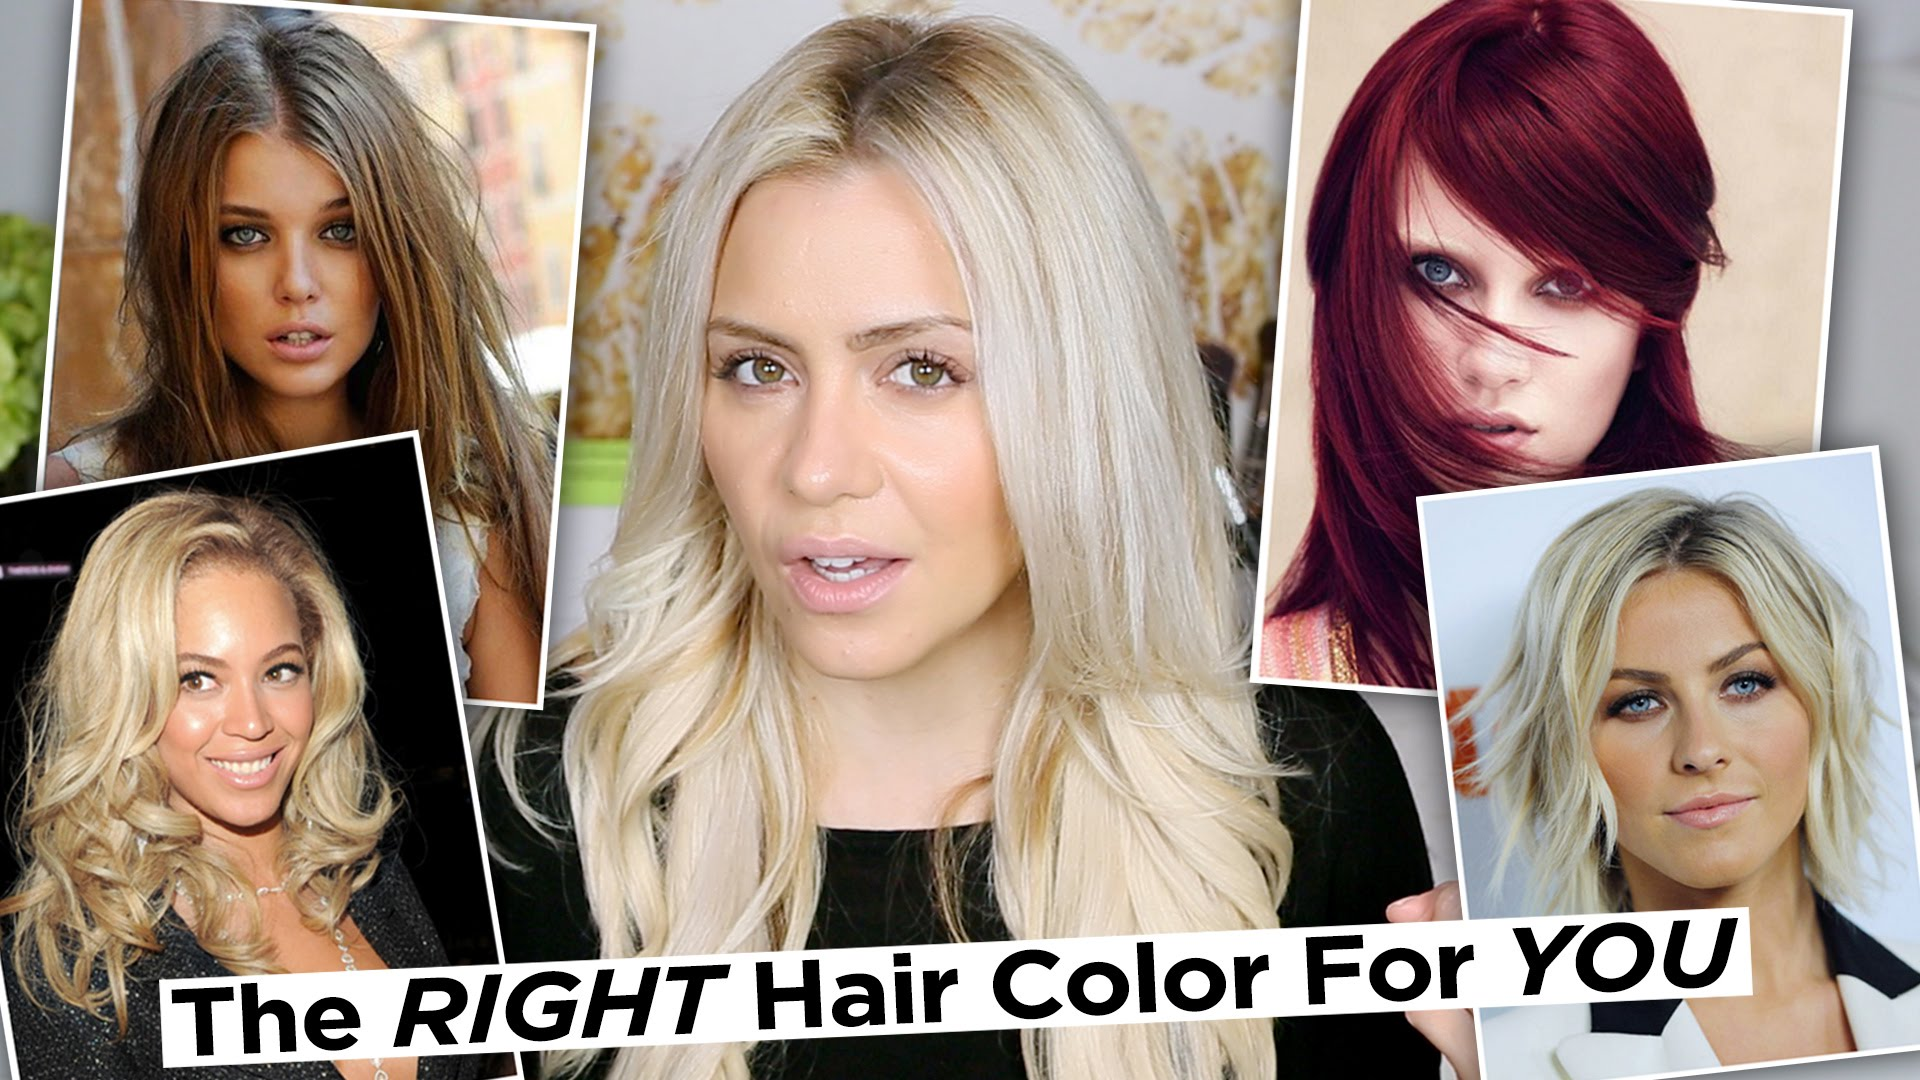 Finding The Right Color for your Hair